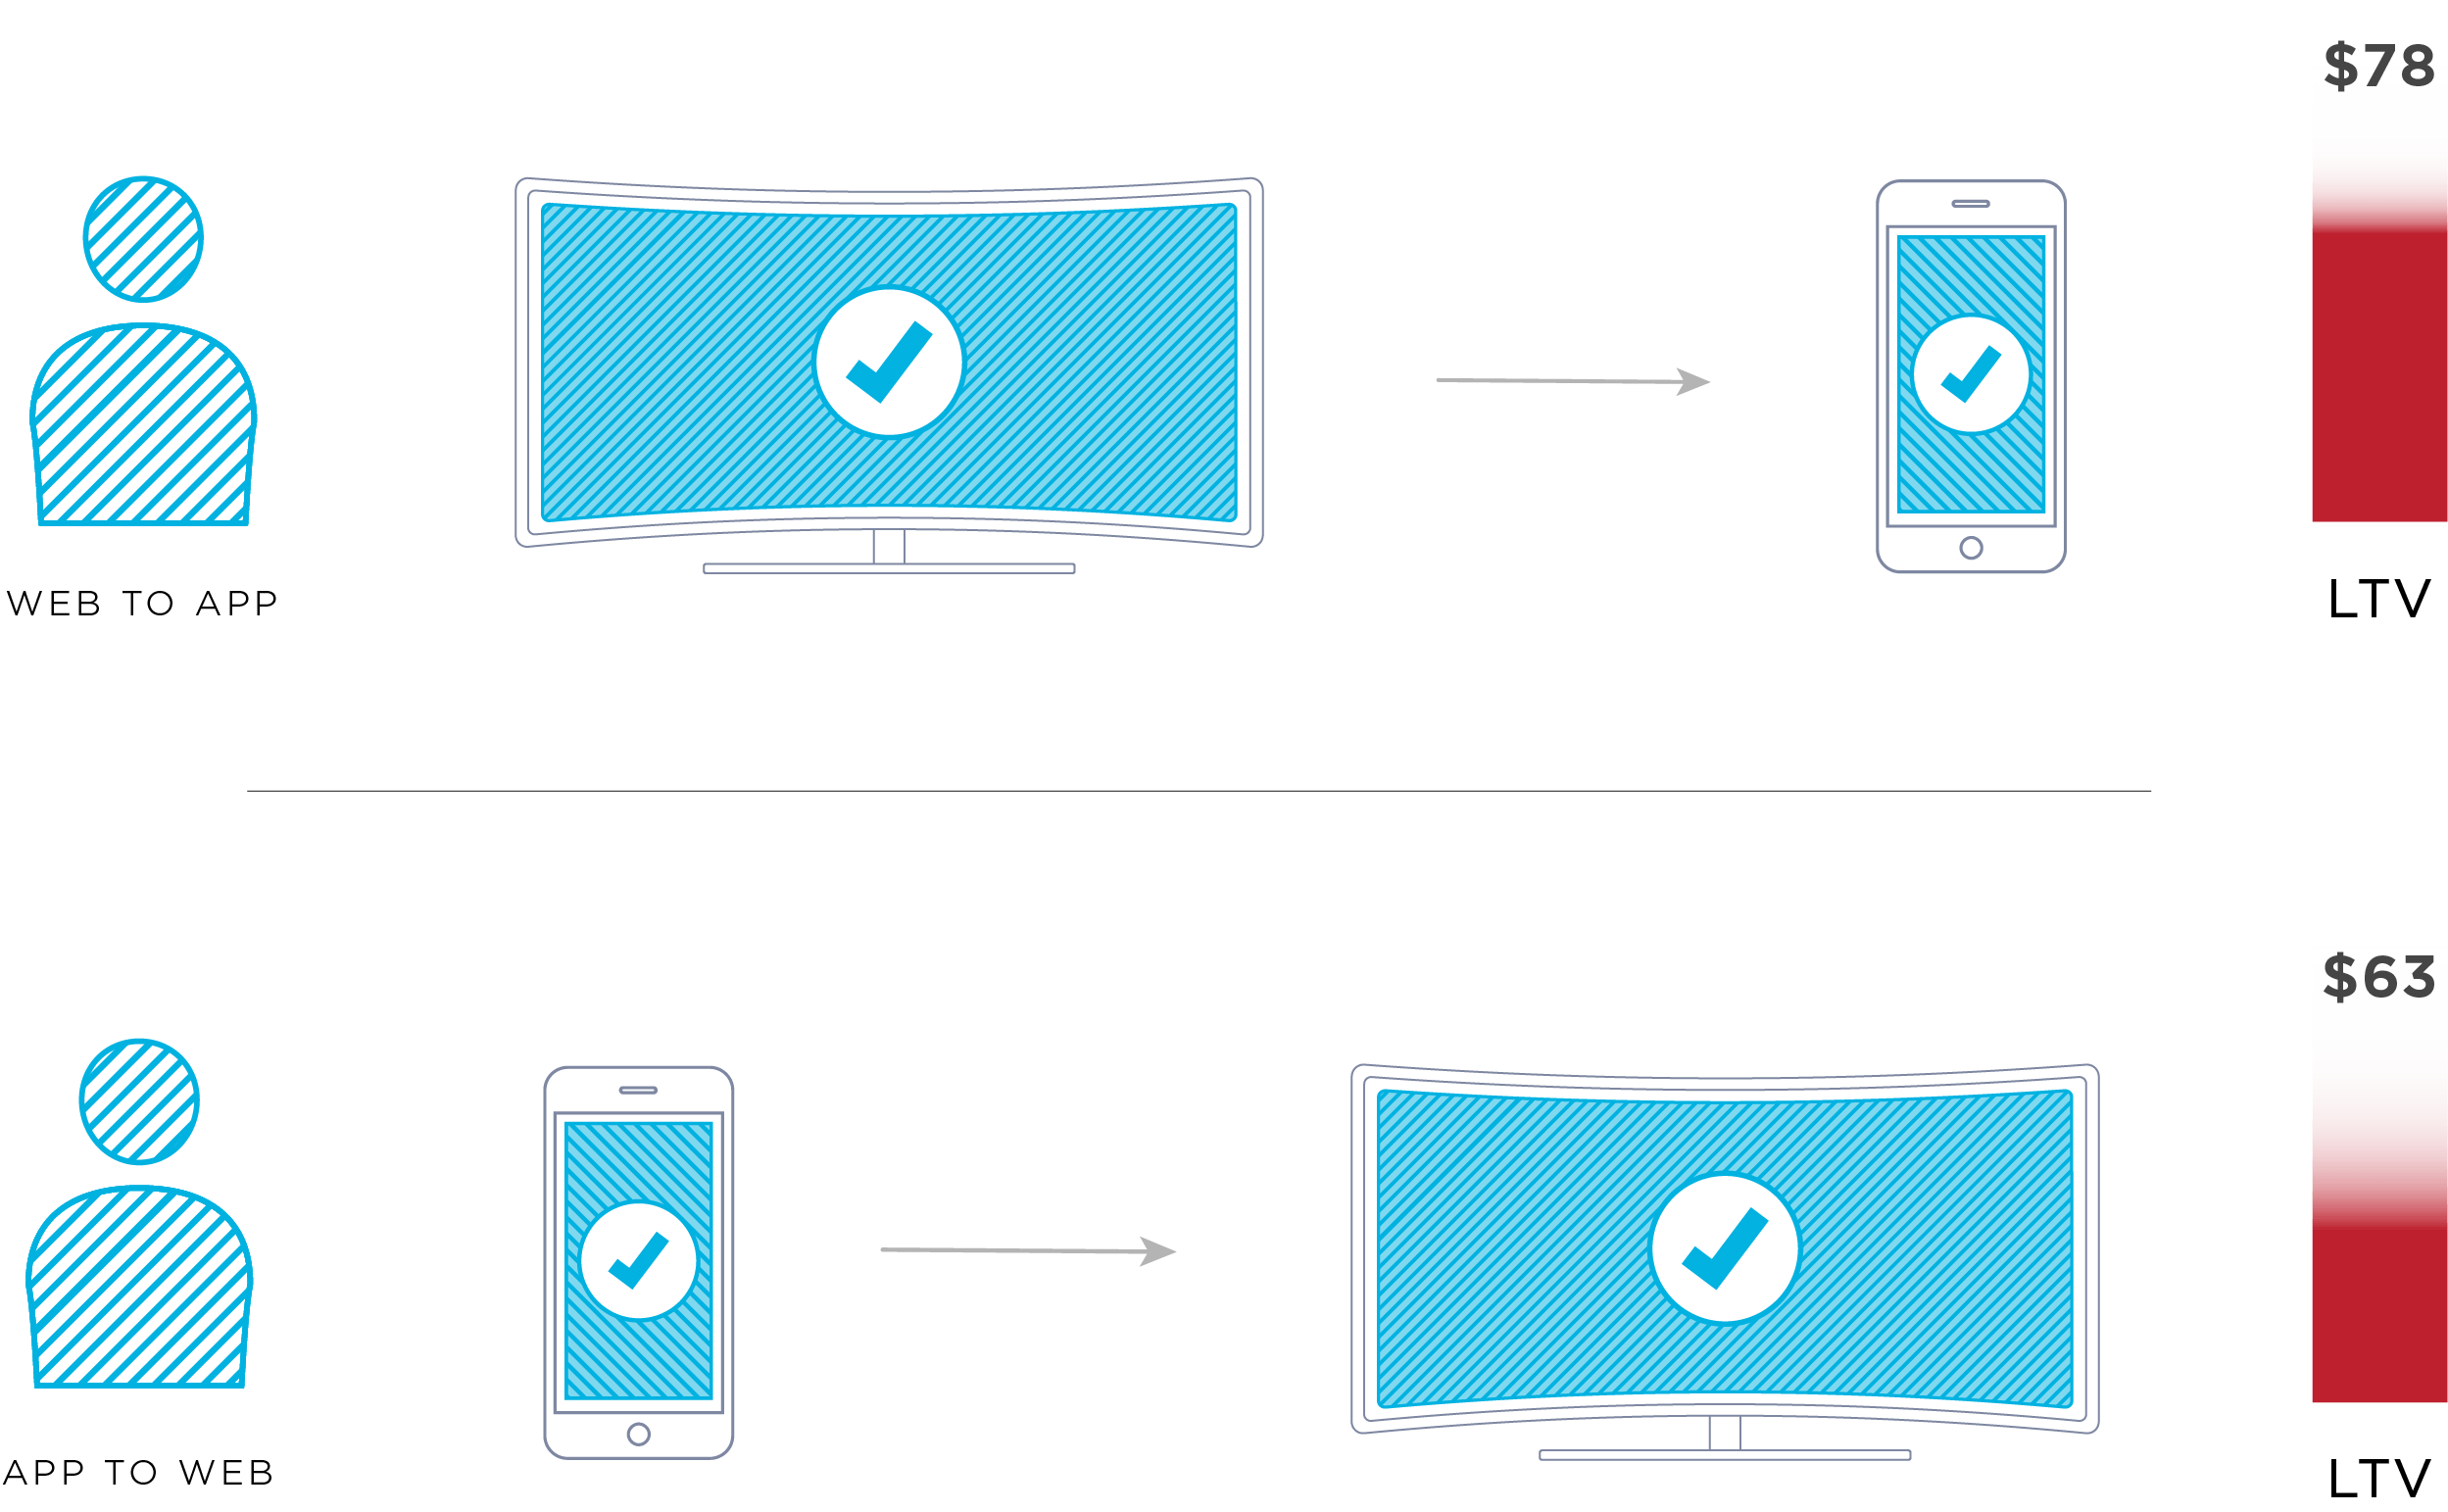 OTT streaming services and Connected TV